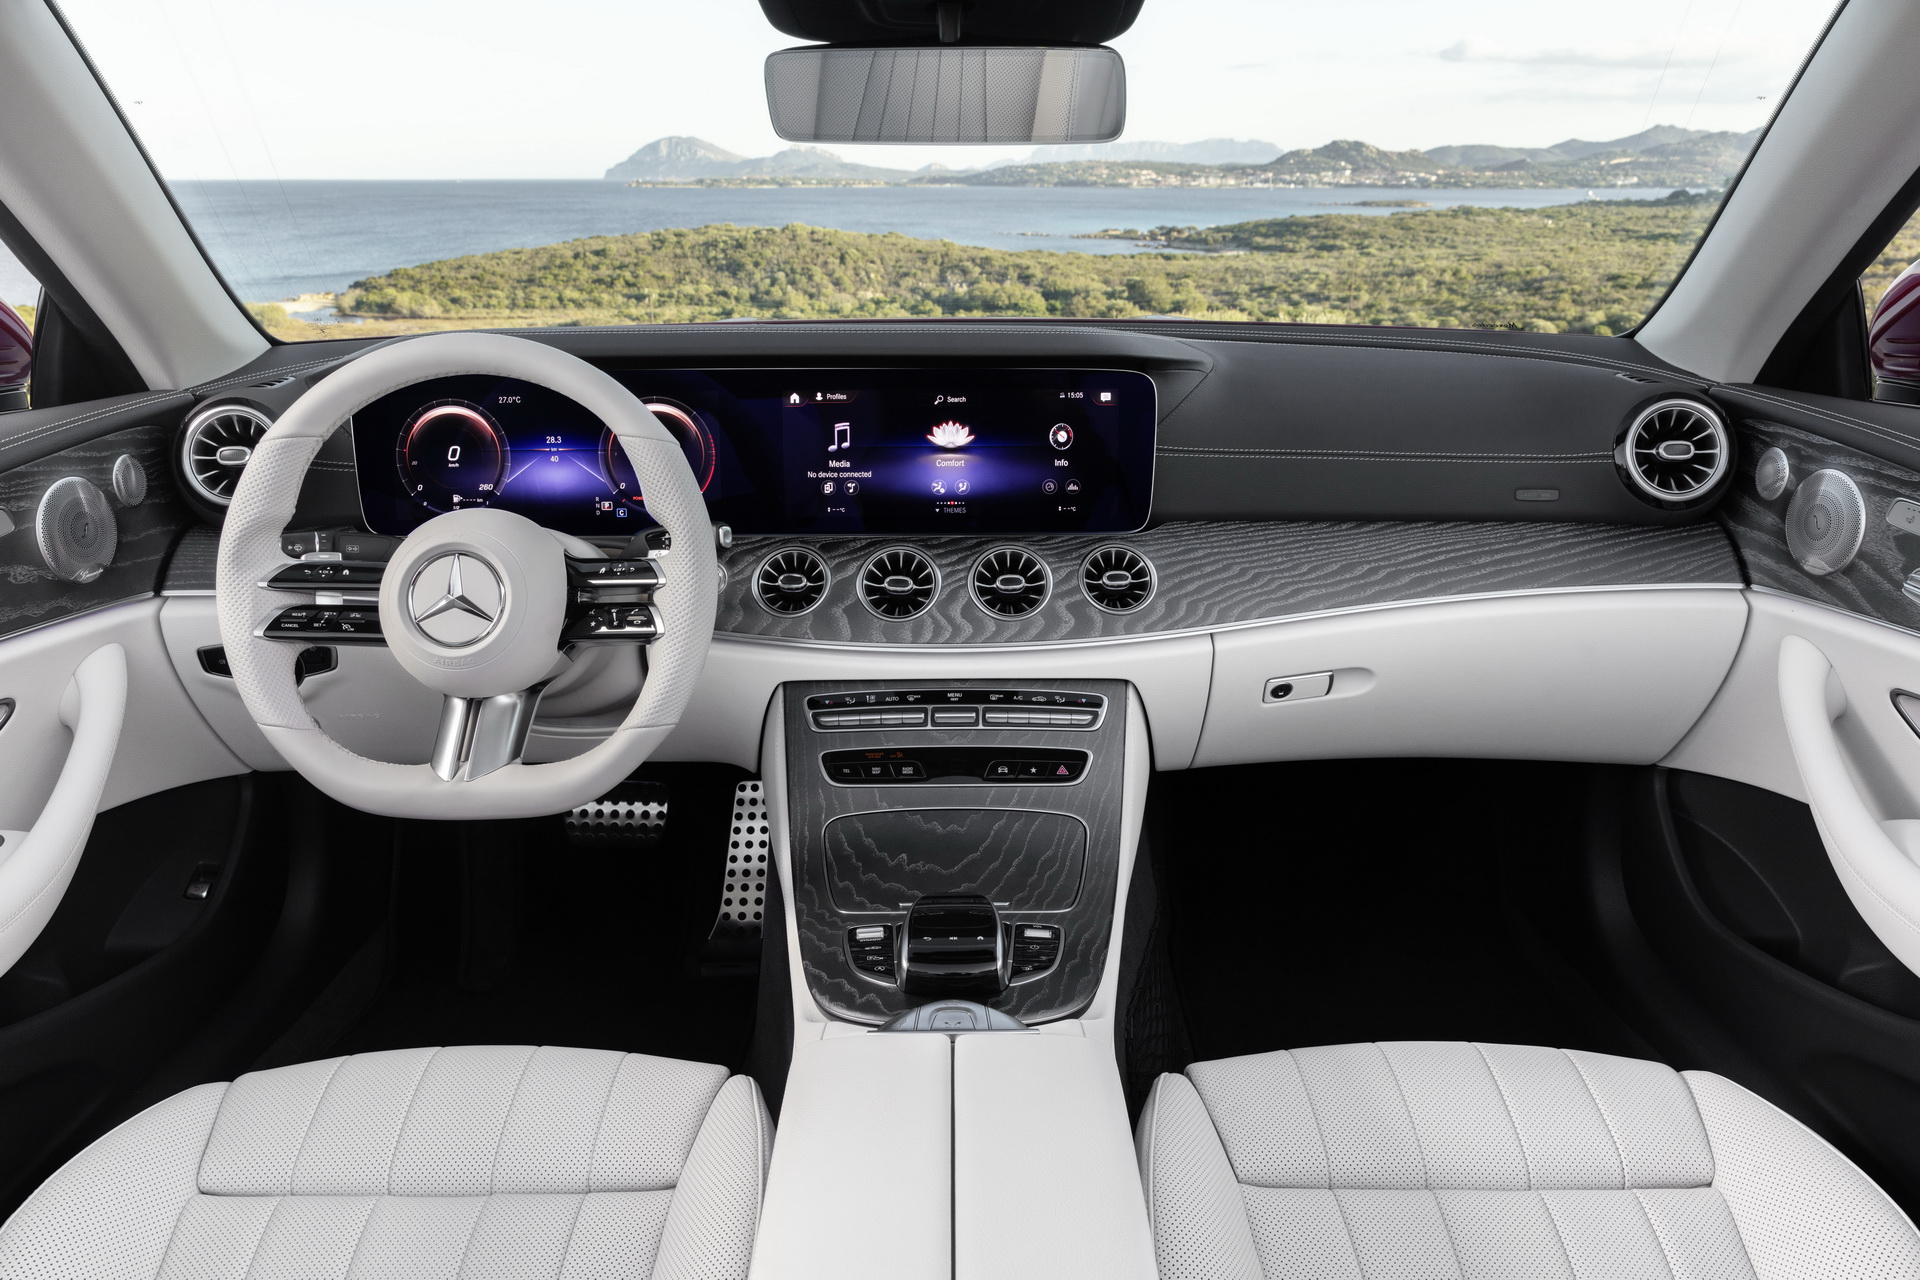 Mercedes-Benz E-Class Coupe and Cabriolet (28)